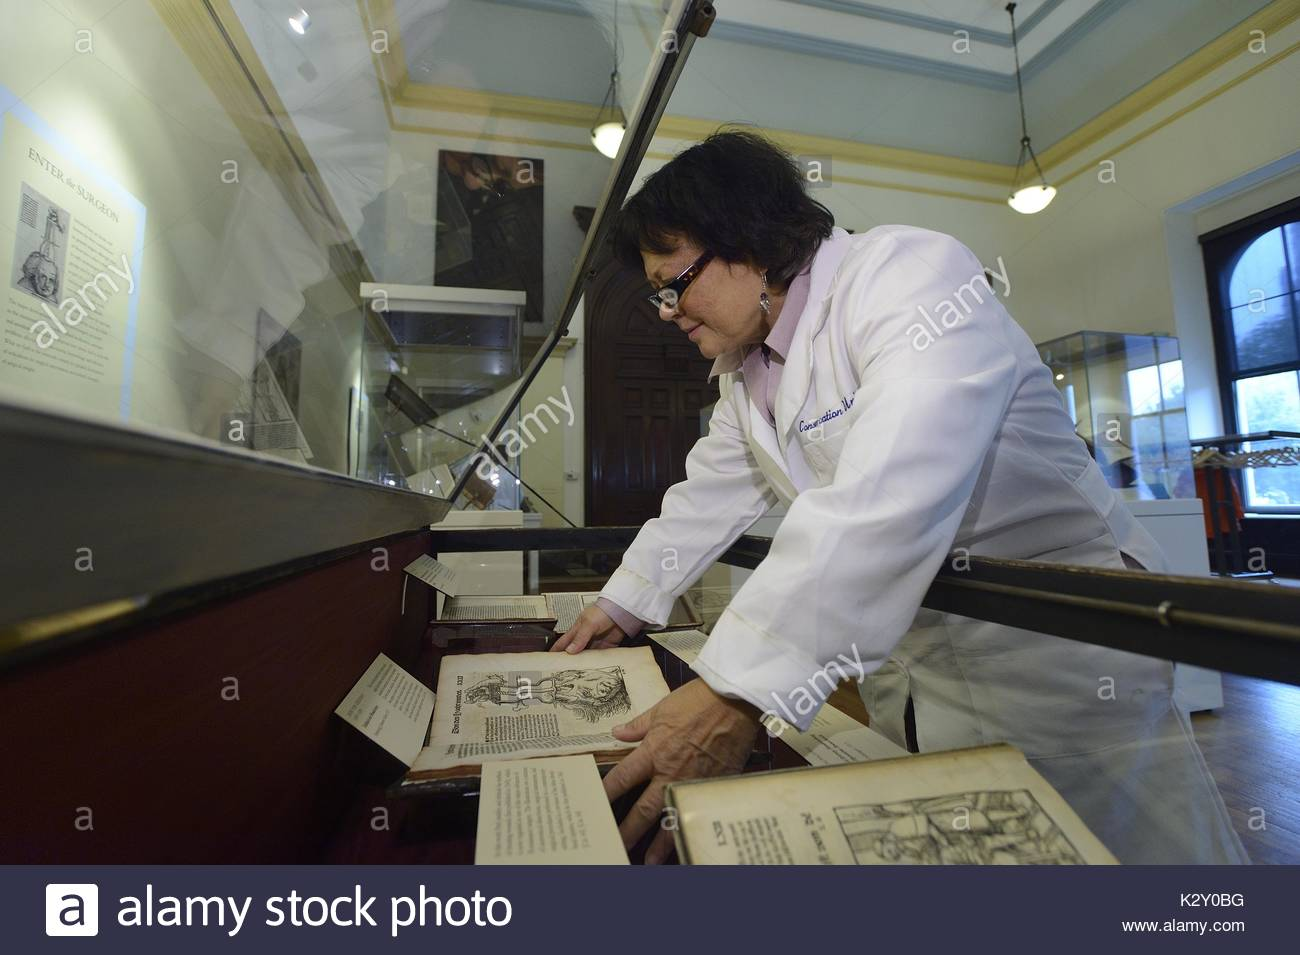 A conservator wearing a white coat bends over an opened glass case as she handles a rare book on display at the George Peabody Library in an exhibit called The Dawn of Neurosurgery, Baltimore, Maryland, 2013. - Stock Image